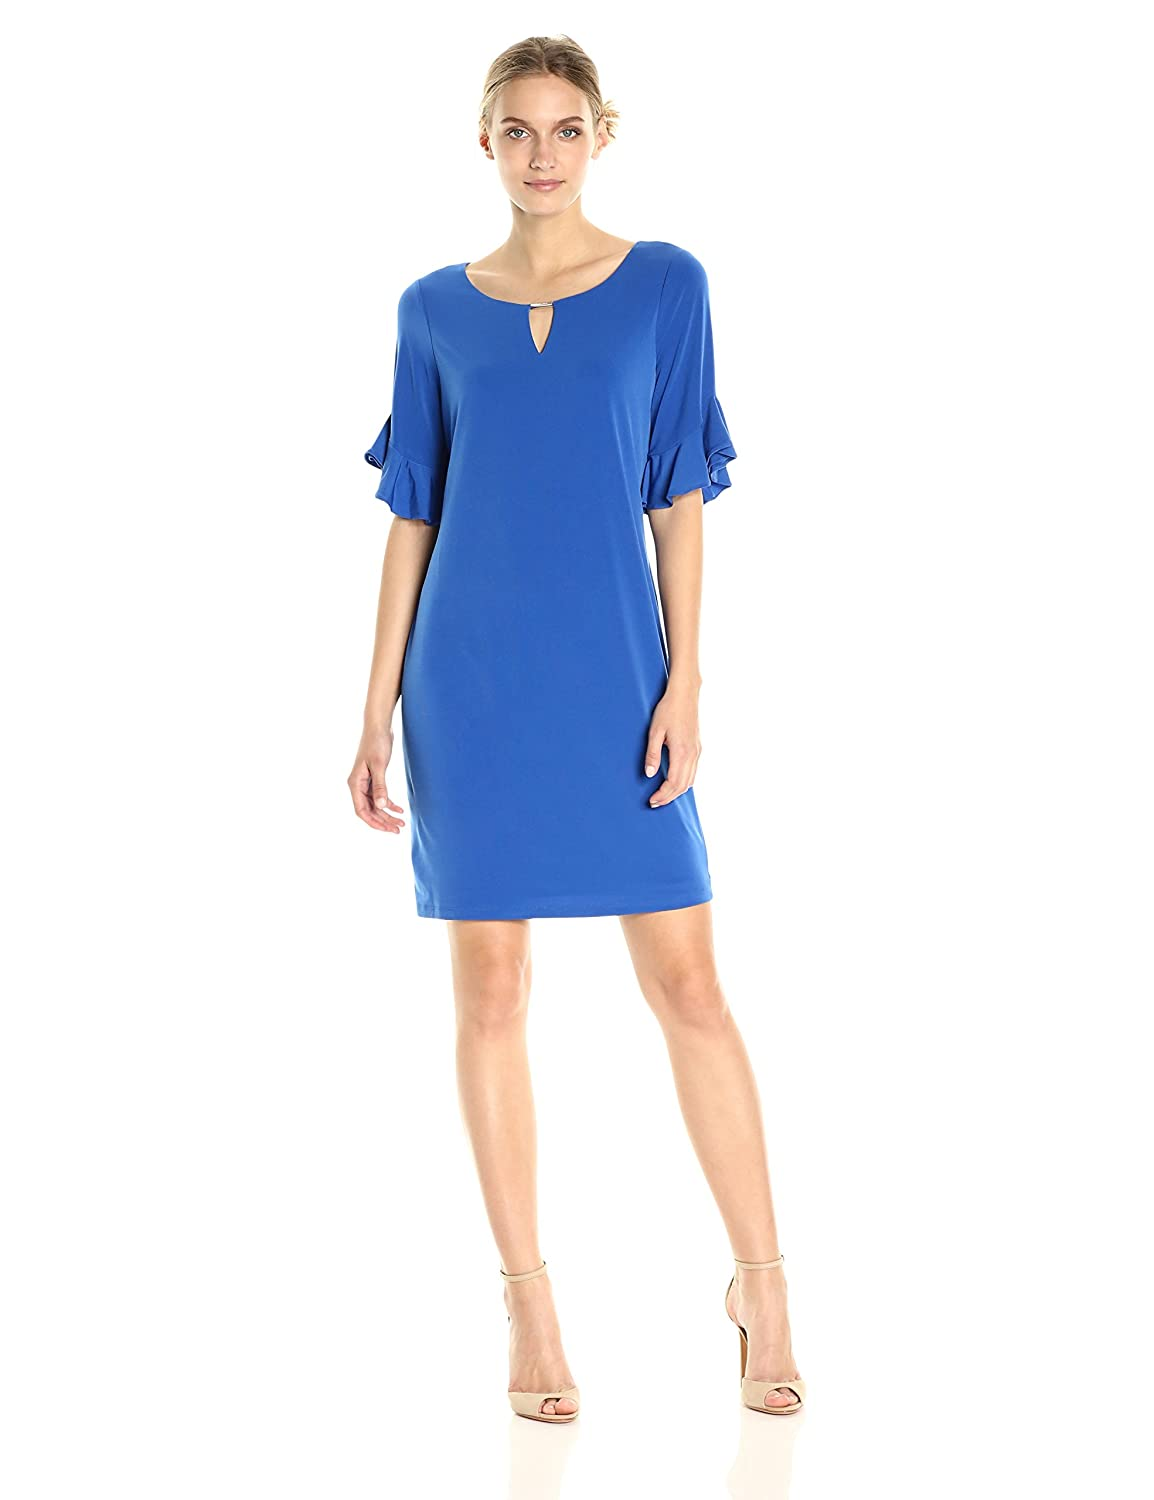 a583aae6 Calvin Klein Women's Ruffle Sleeve Dress with Hardware at Amazon ...